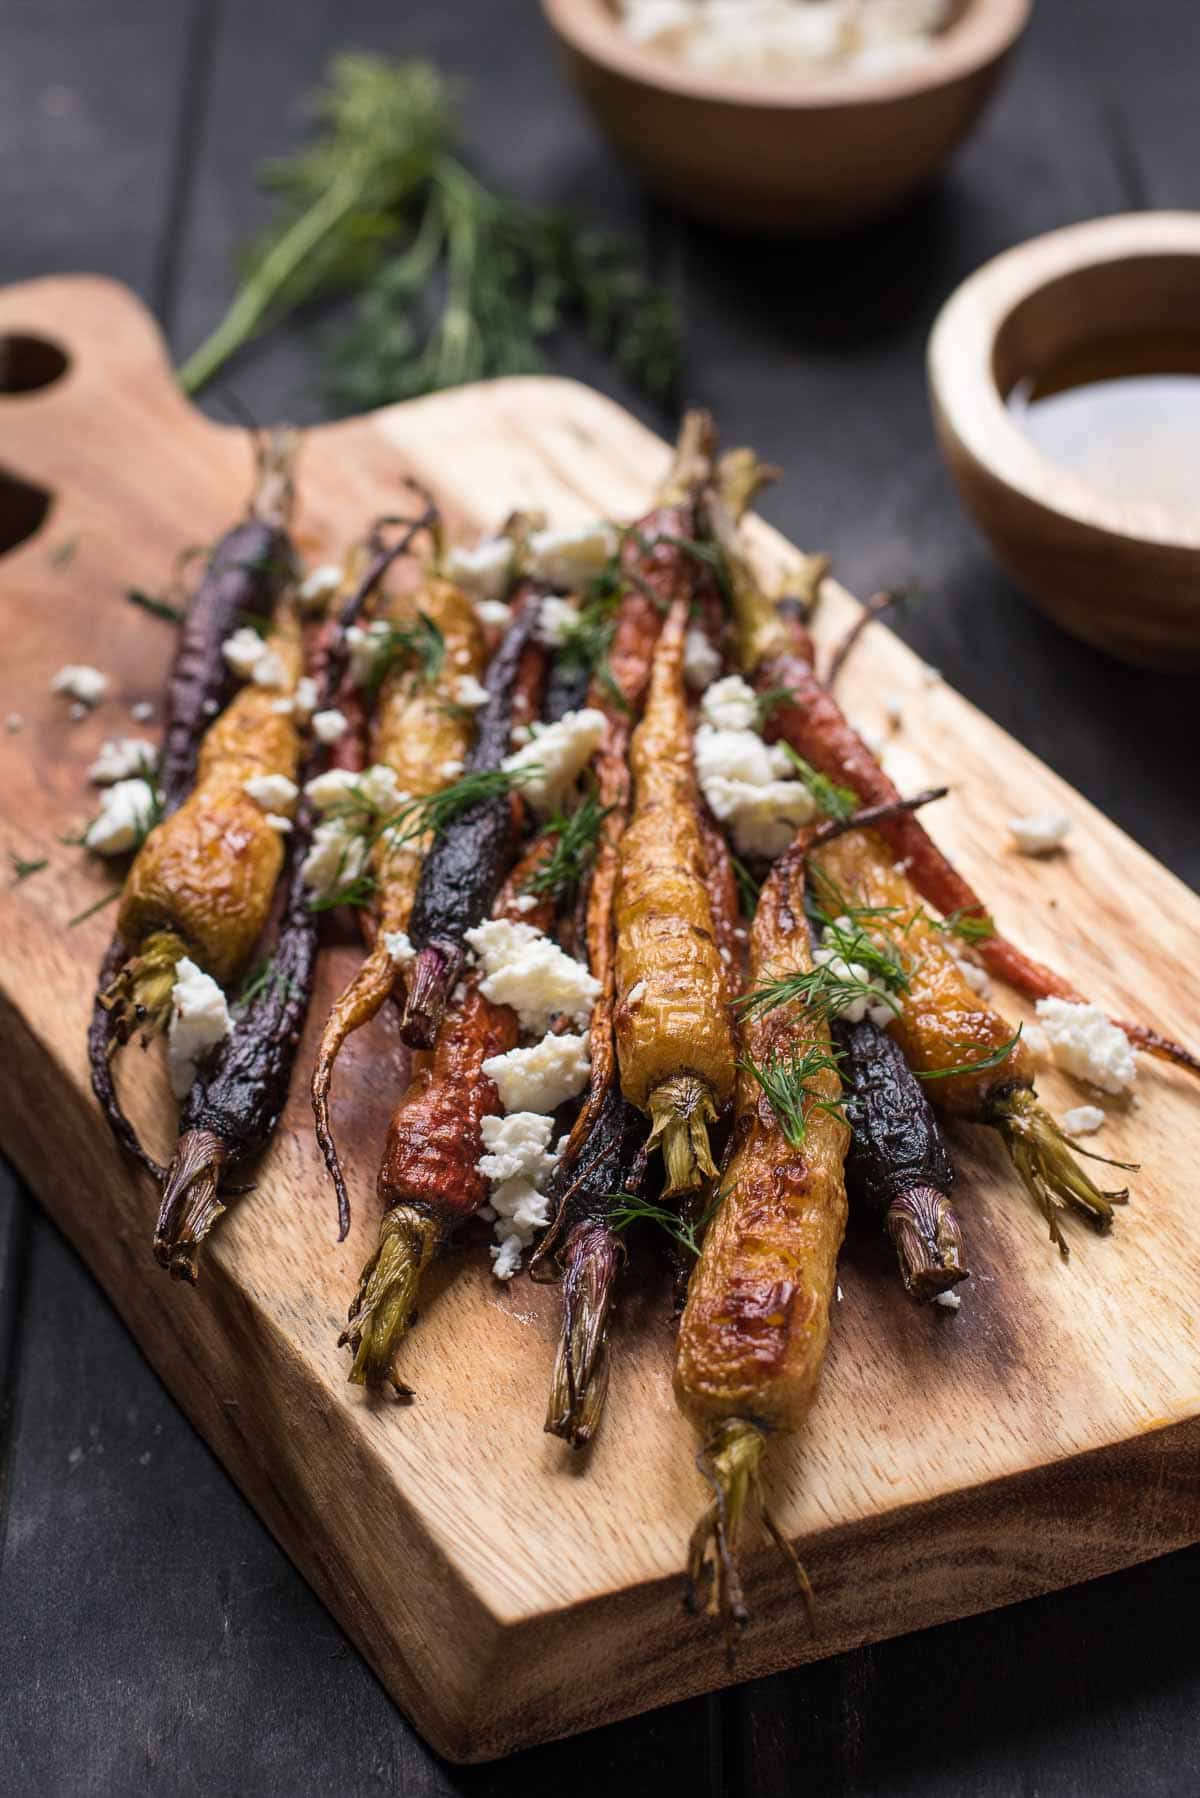 Warm Roasted Carrots with Feta and Dill make a lovely side dish for Easter or any occasion!